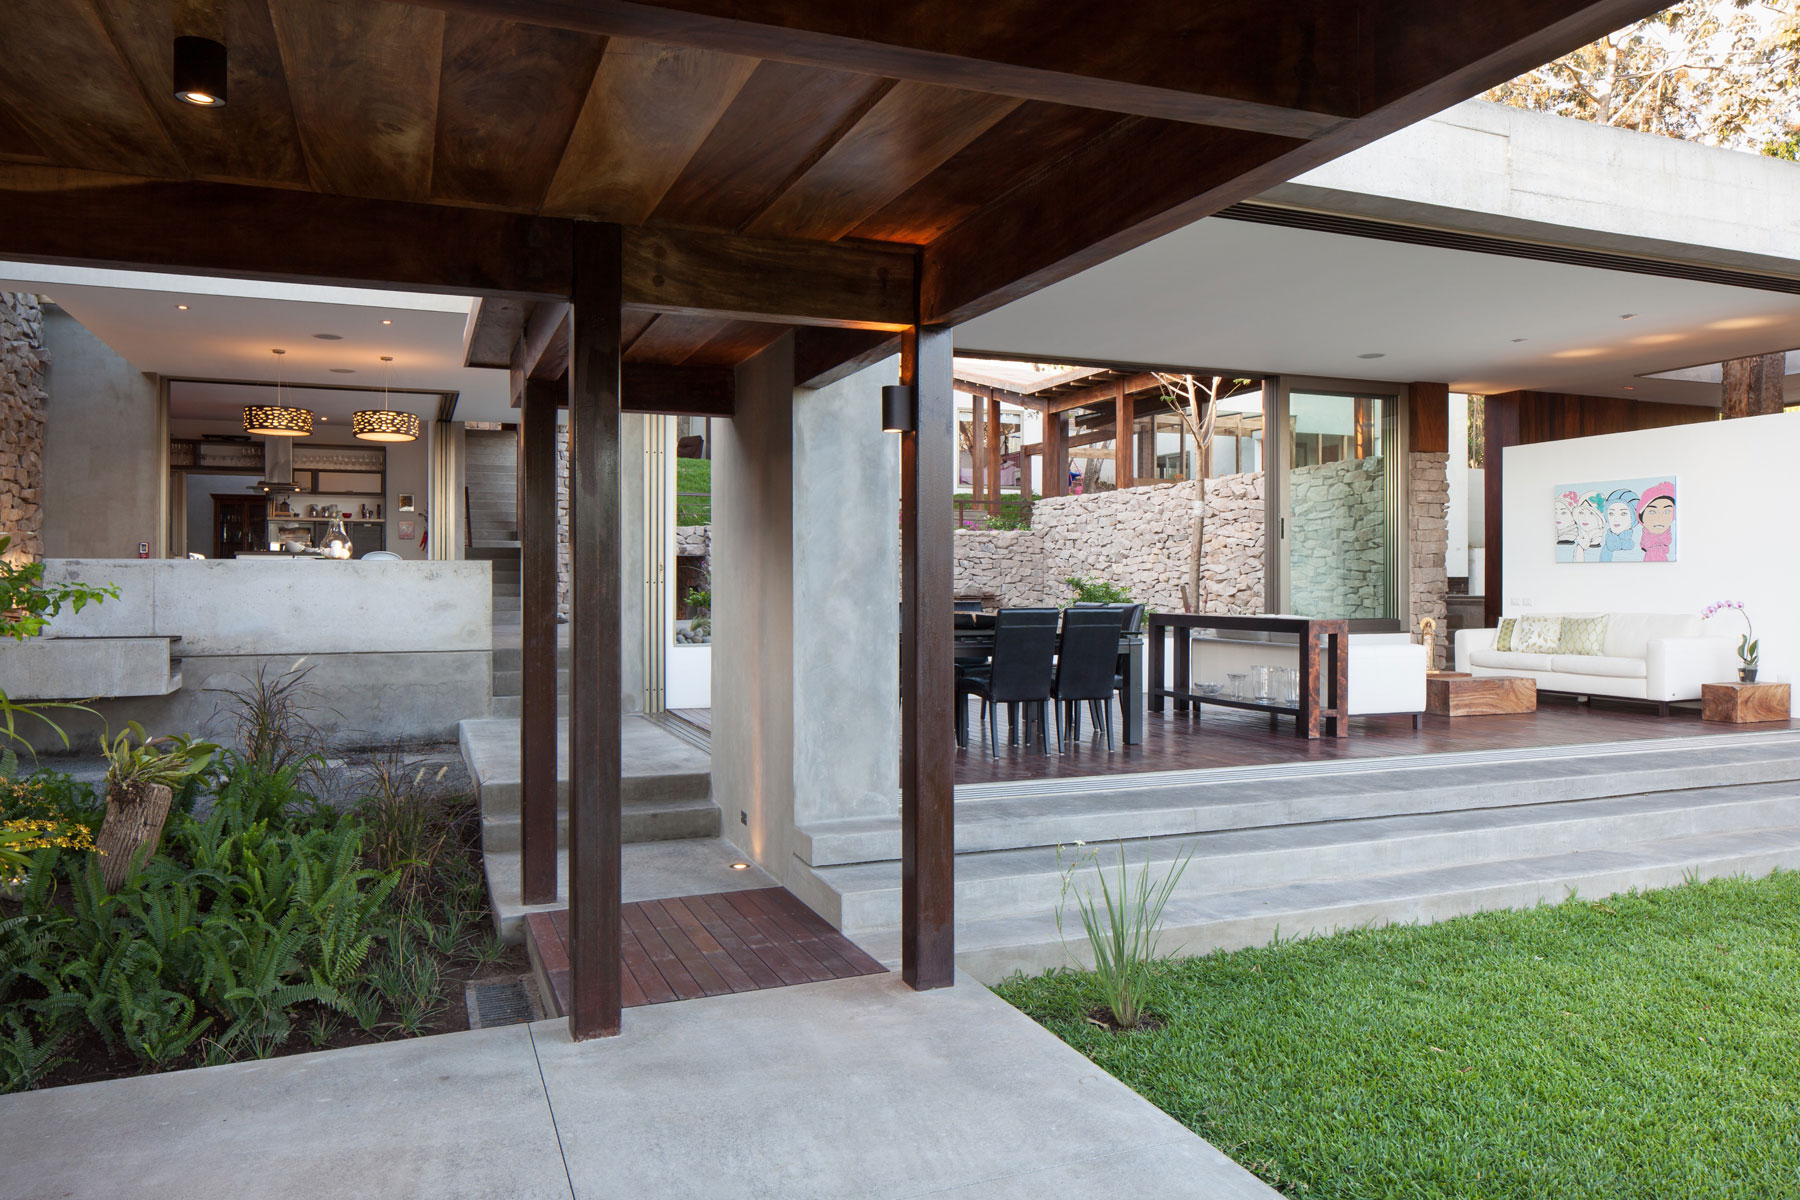 Modern rustic sensation of garden house in el salvador by for Modern garden house